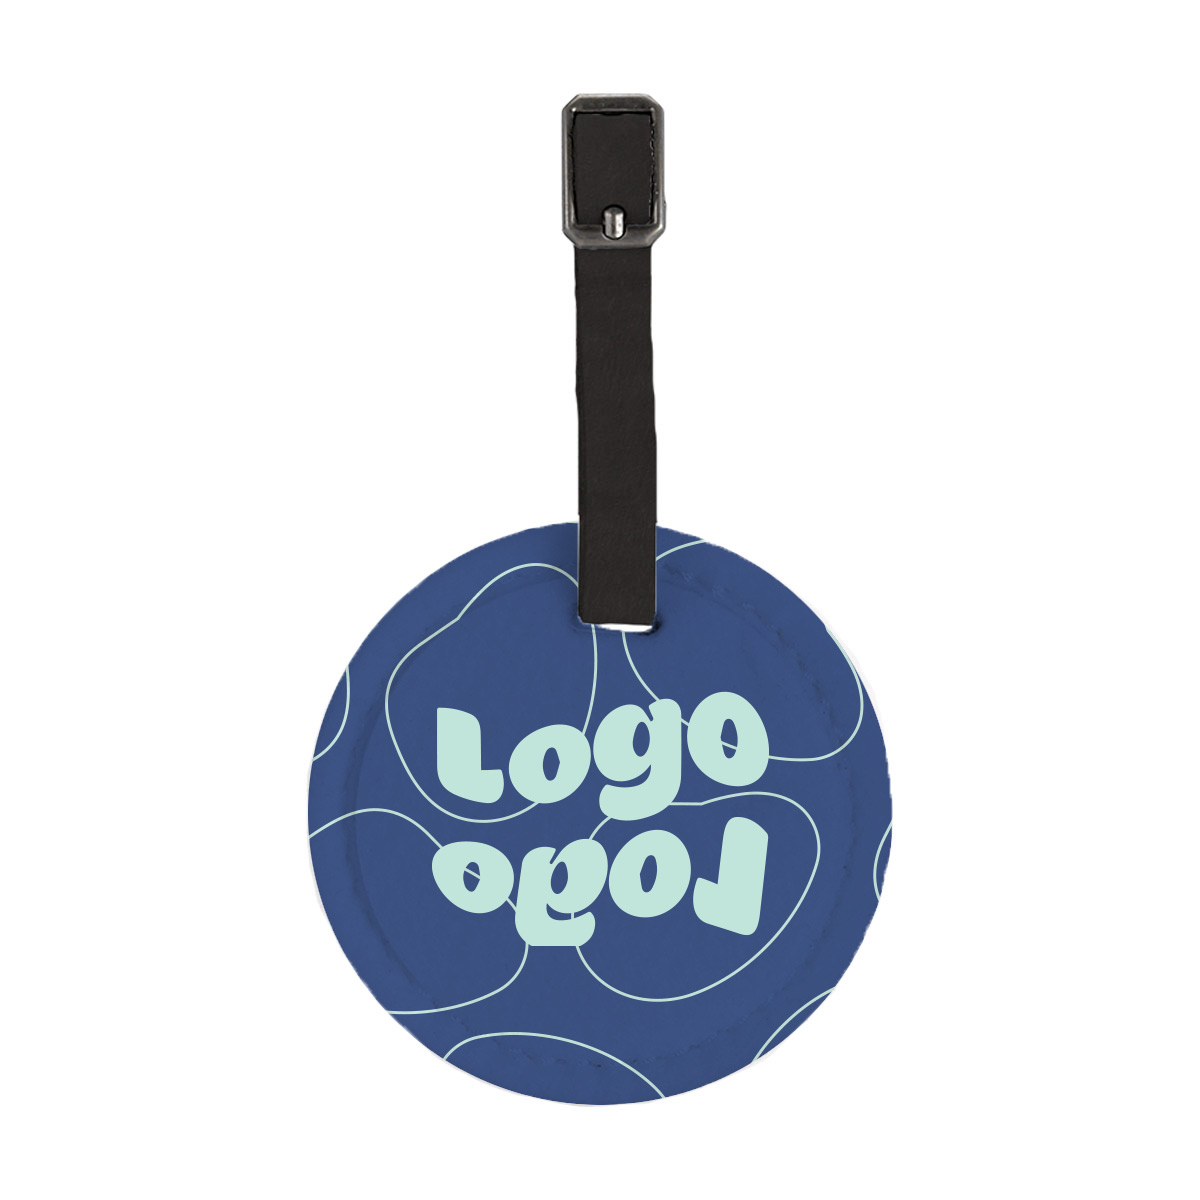 268054 vibrant felt round luggage tag full color sublimation